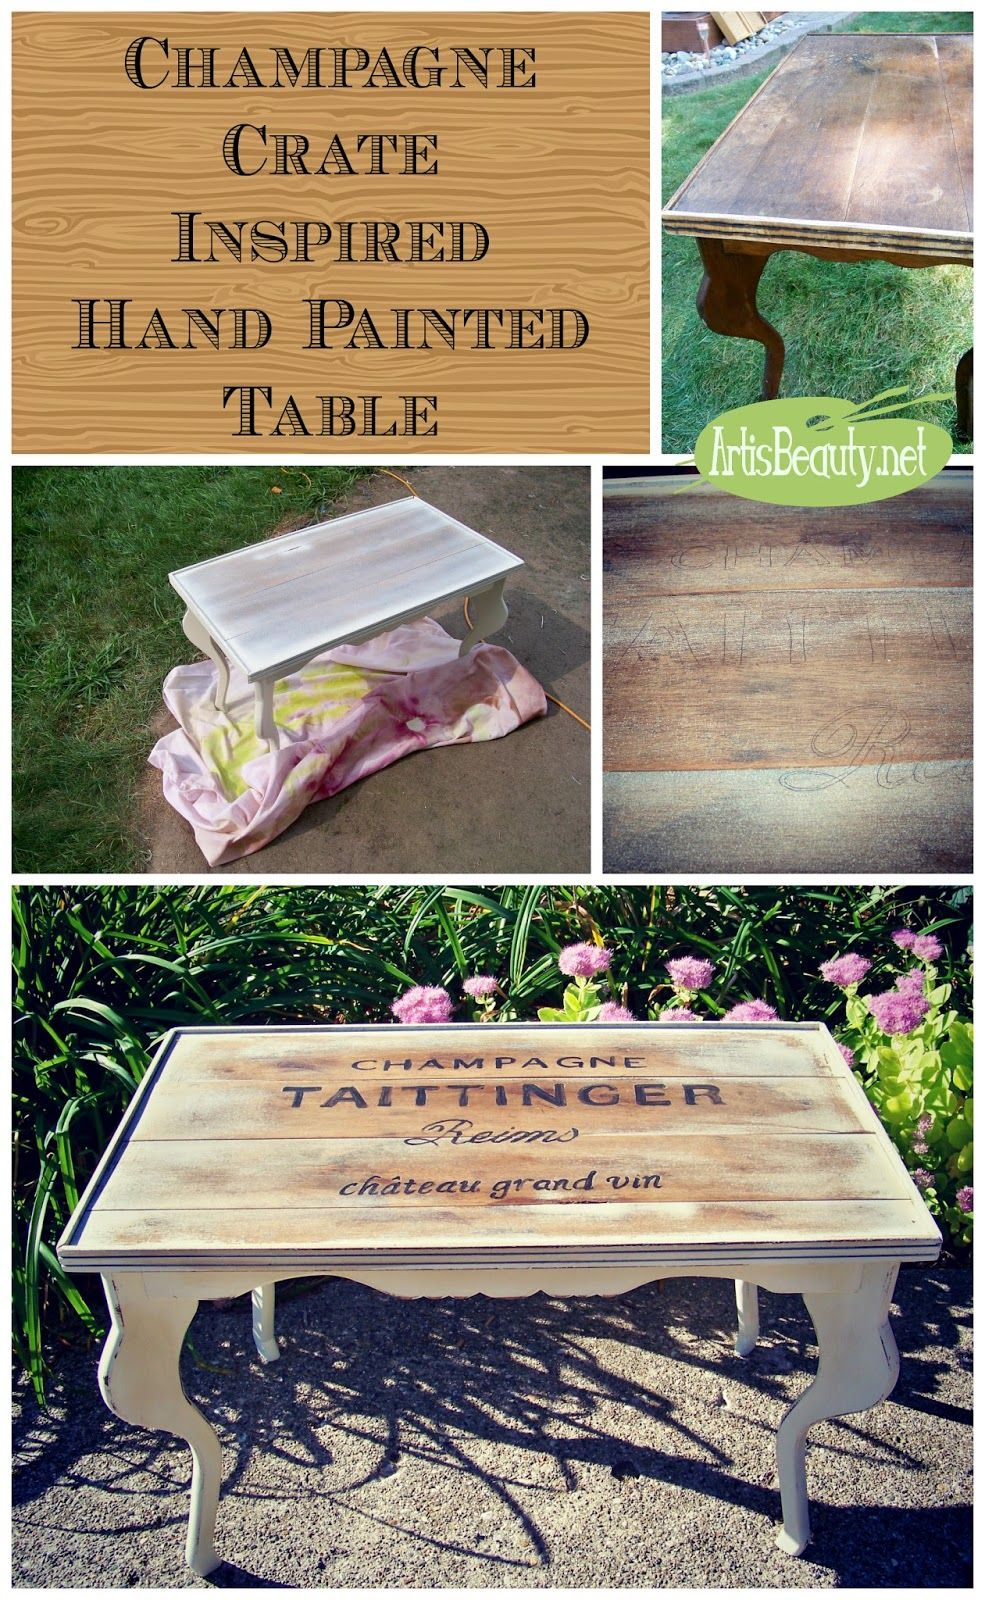 ART IS BEAUTY: champagne crate inspired table